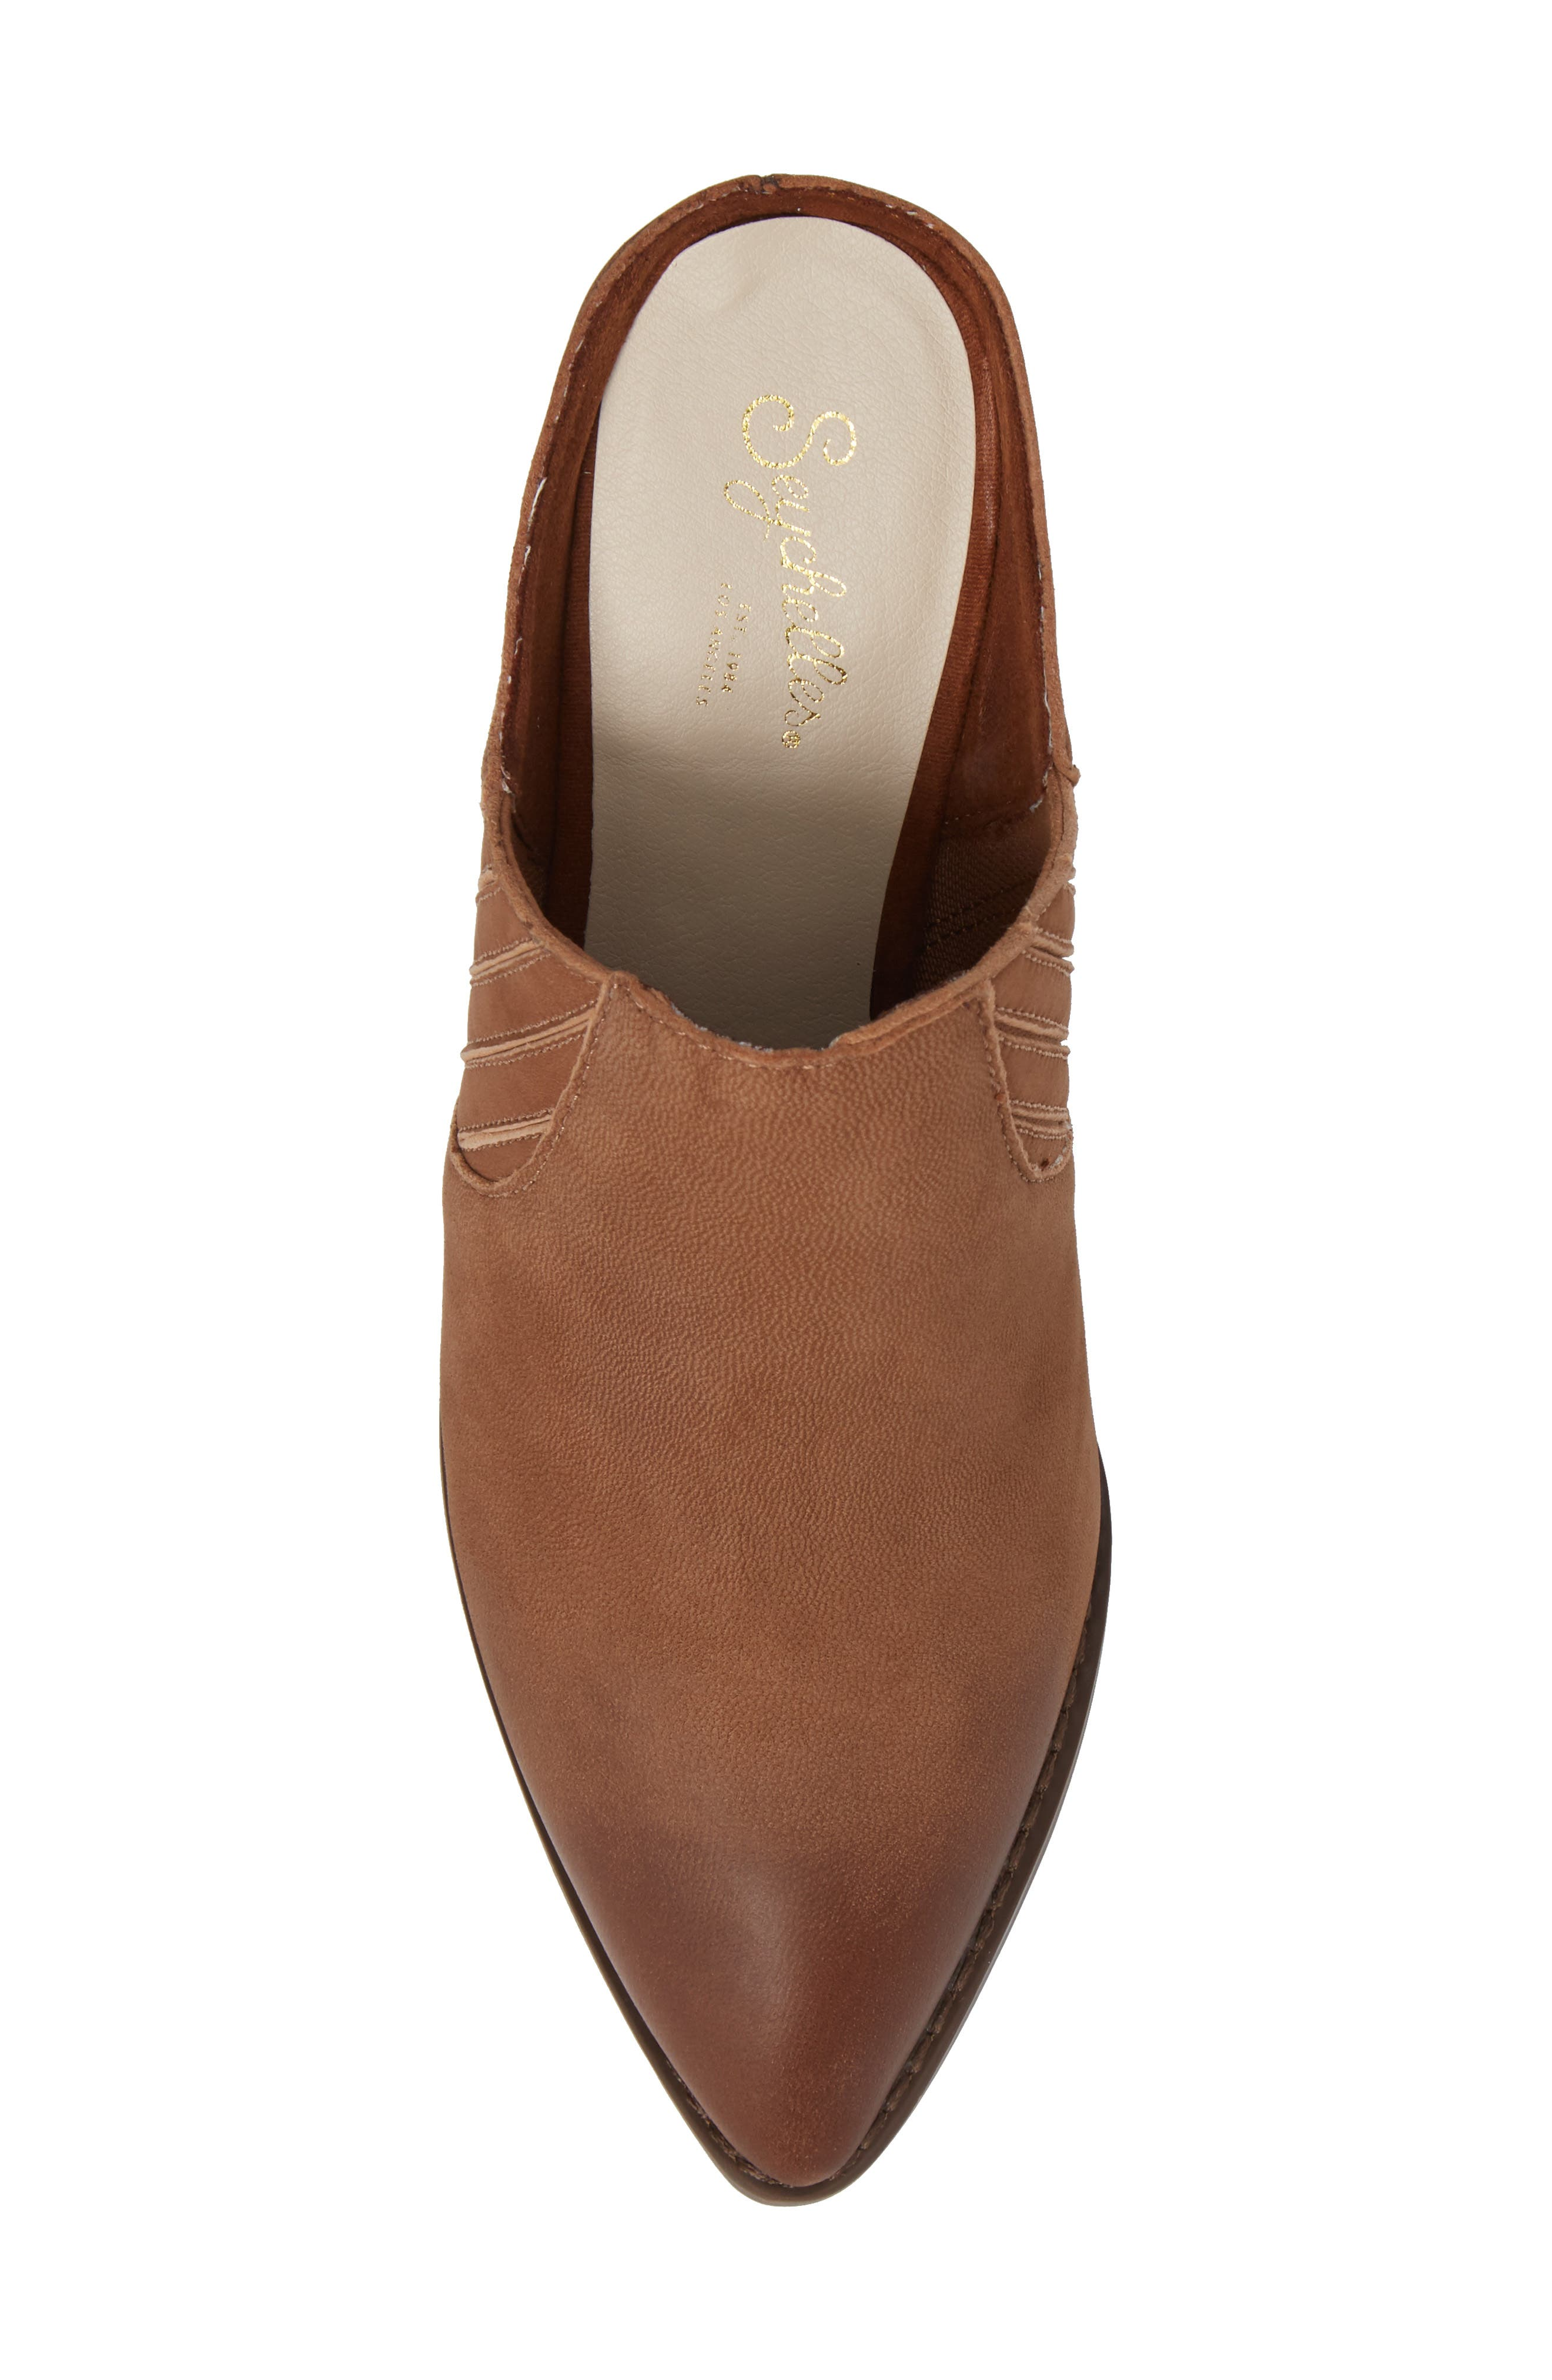 Dialogue Pointy Toe Mule,                             Alternate thumbnail 14, color,